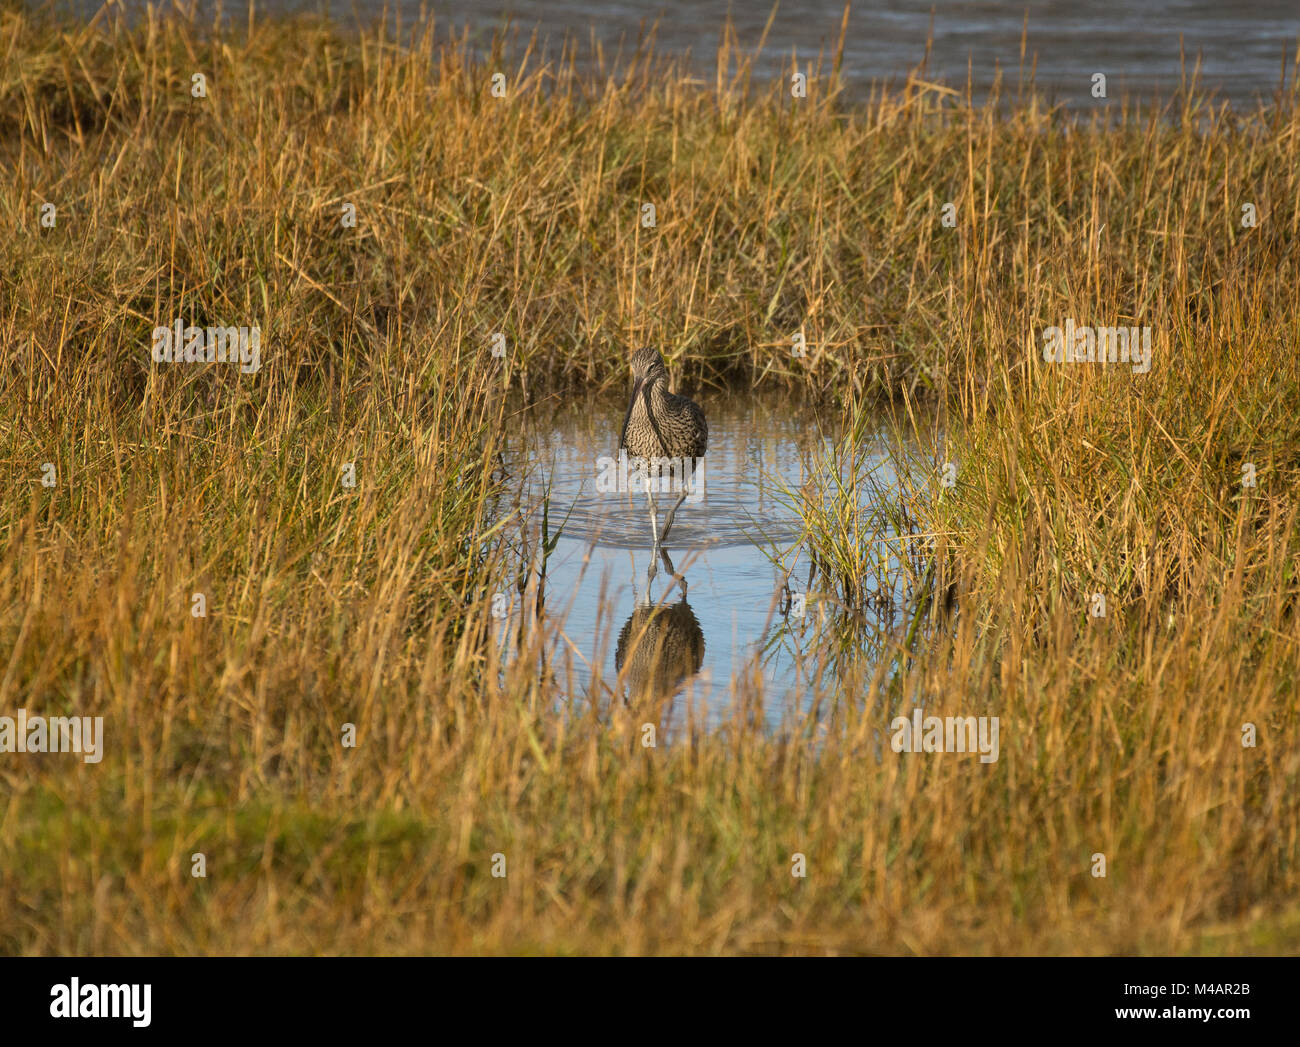 Curlew, Numenius arquata, foraging in salt marsh, Morecambe Bay, Lancashire, UK Stock Photo